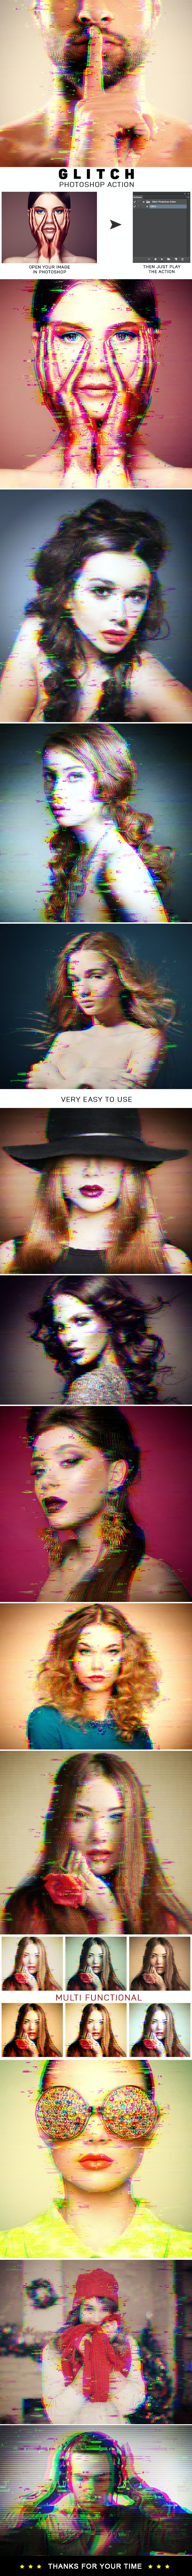 Glitch Photoshop Action - Photo Effects Actions